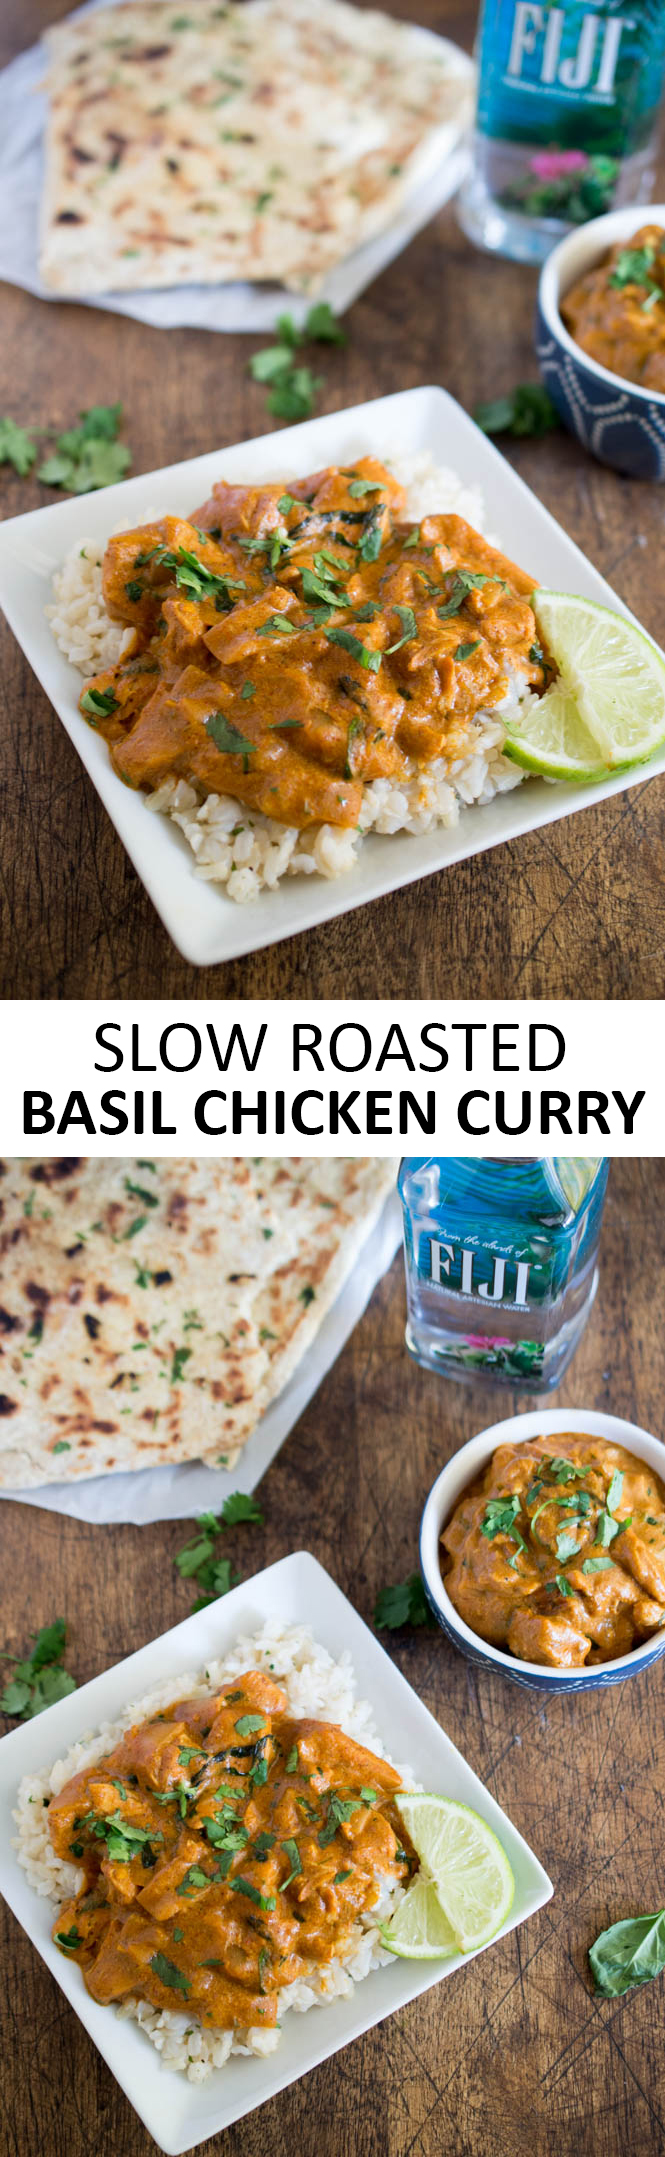 Slow Roasted Basil Chicken Curry | Recipe | Food recipes ...